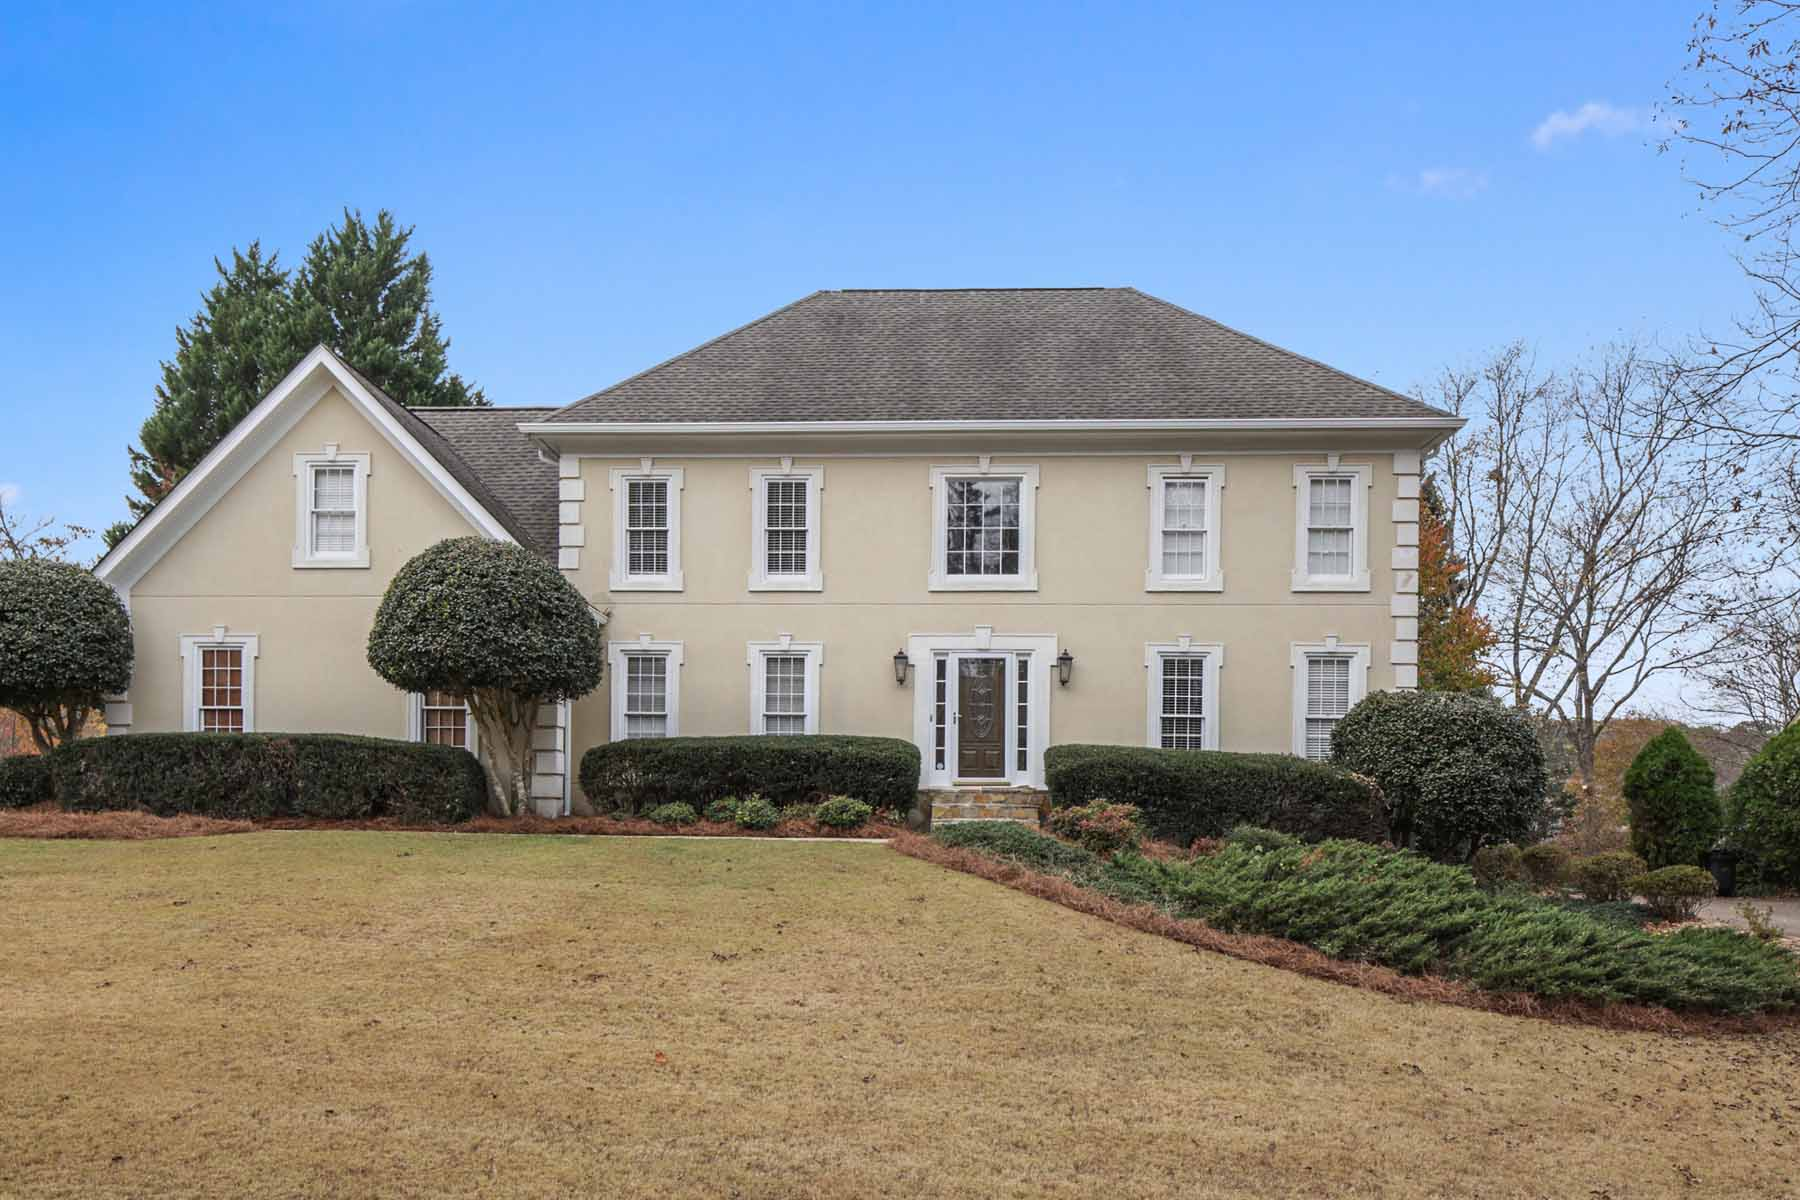 Single Family Home for Sale at Beautiful Traditional Home In Popular Swim Tennis 5377 Goose Creek Cove Peachtree Corners, Georgia, 30092 United States